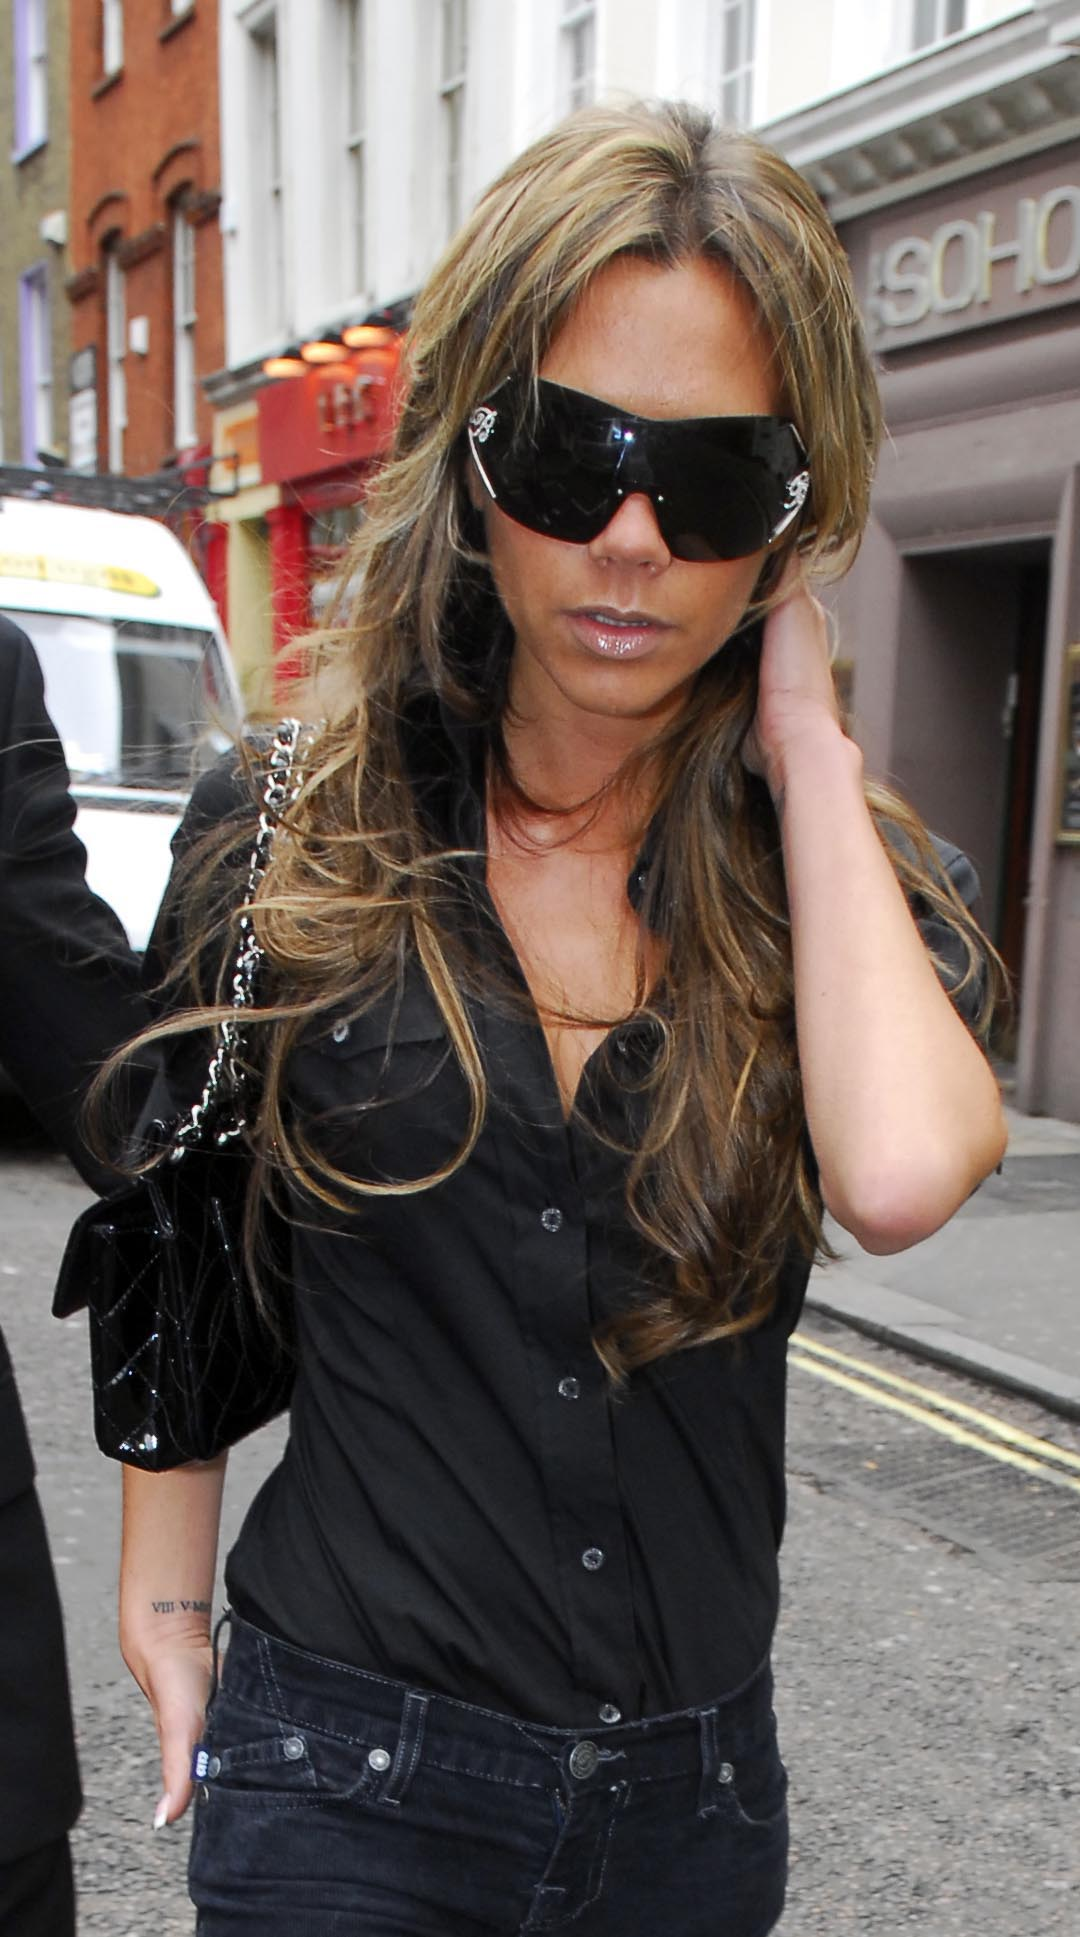 93855_Victoria_Beckham_out_and_about_in_London_07.jpg